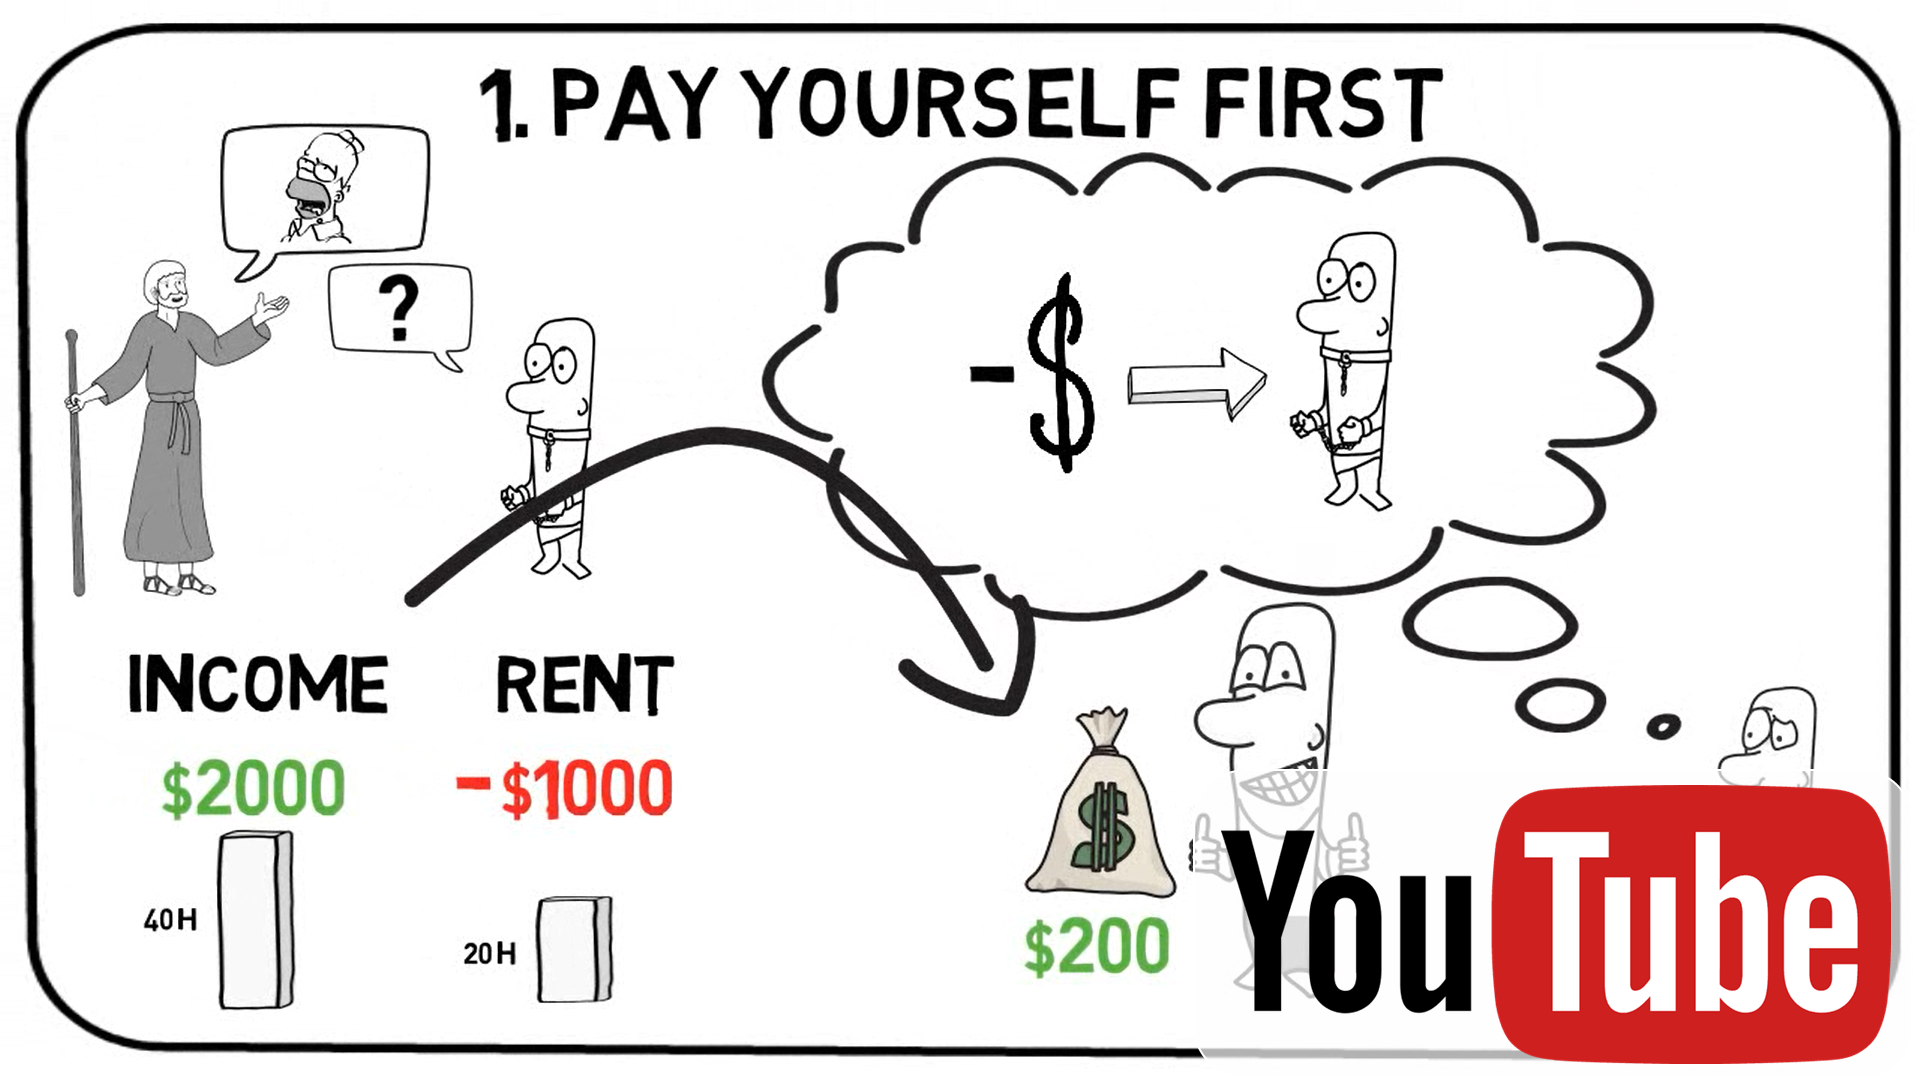 medium resolution of pay yourself first investing investing for beginners investing money investing in your 20s investing in your 30s saving money ideas saving money tips